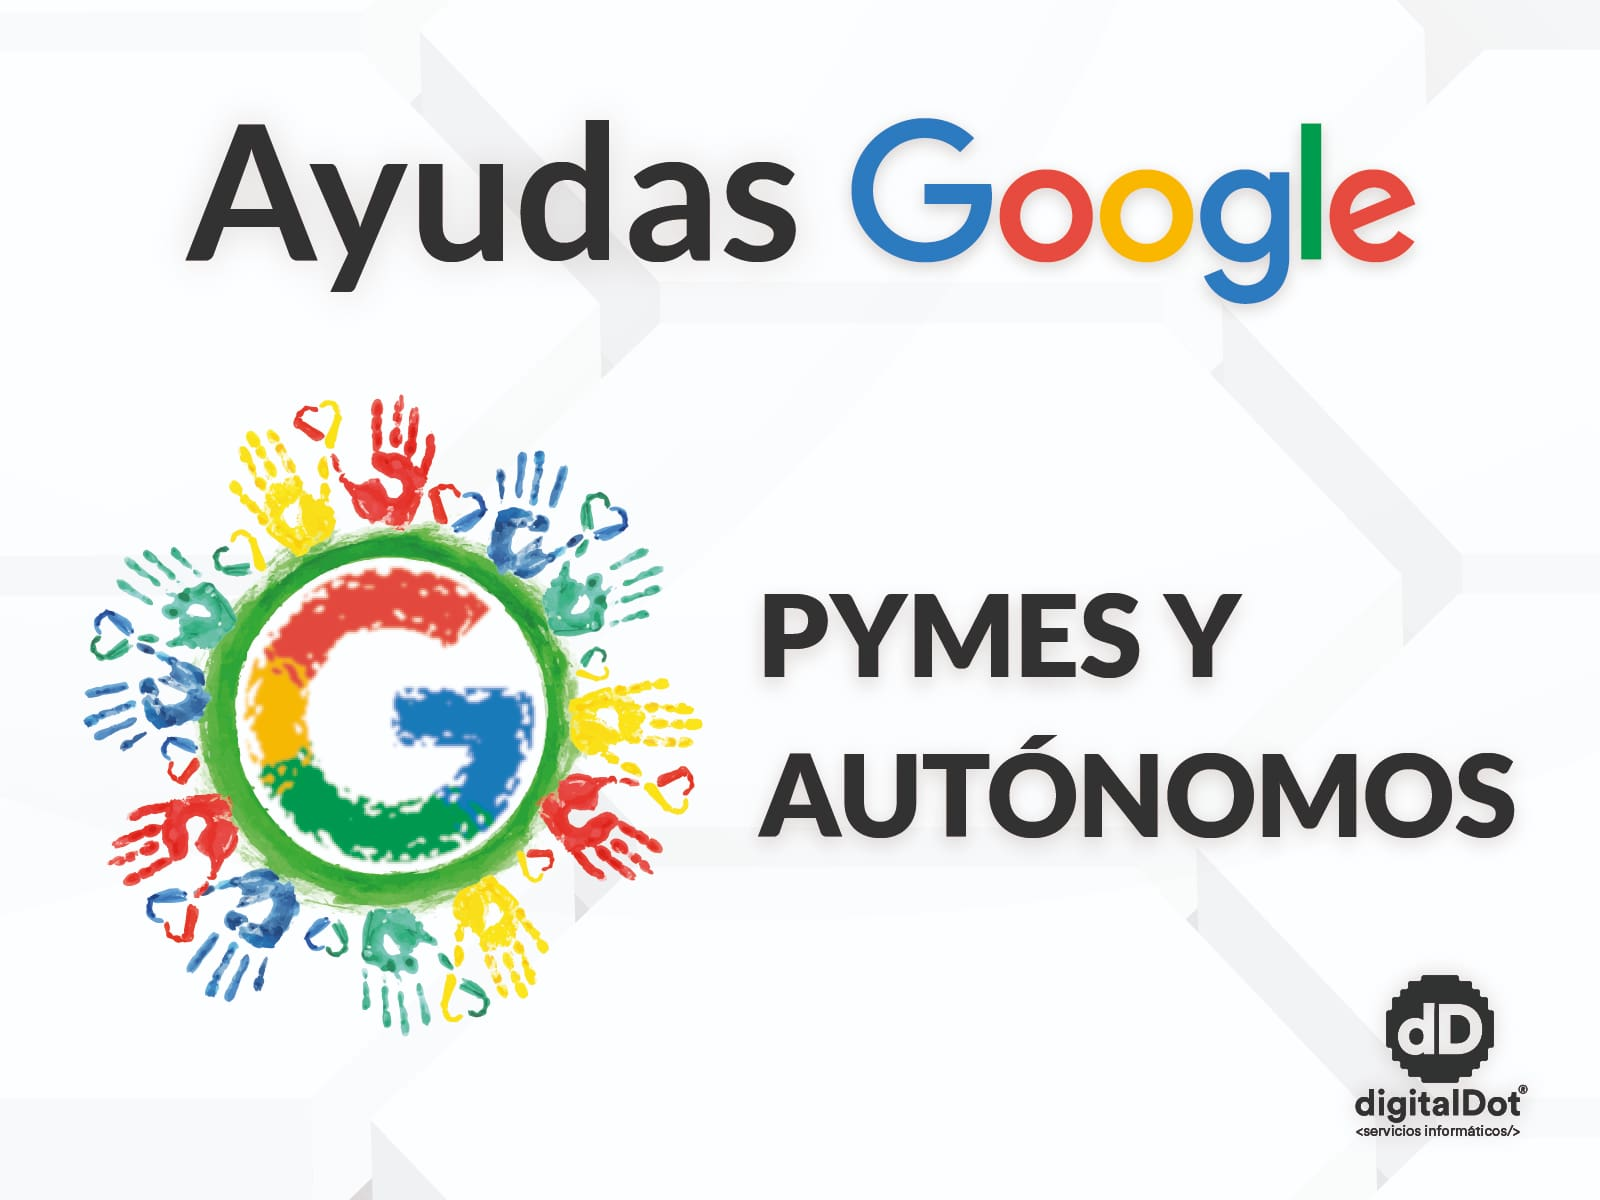 Ayudas de Google en marketing para PYMES y Autónomos